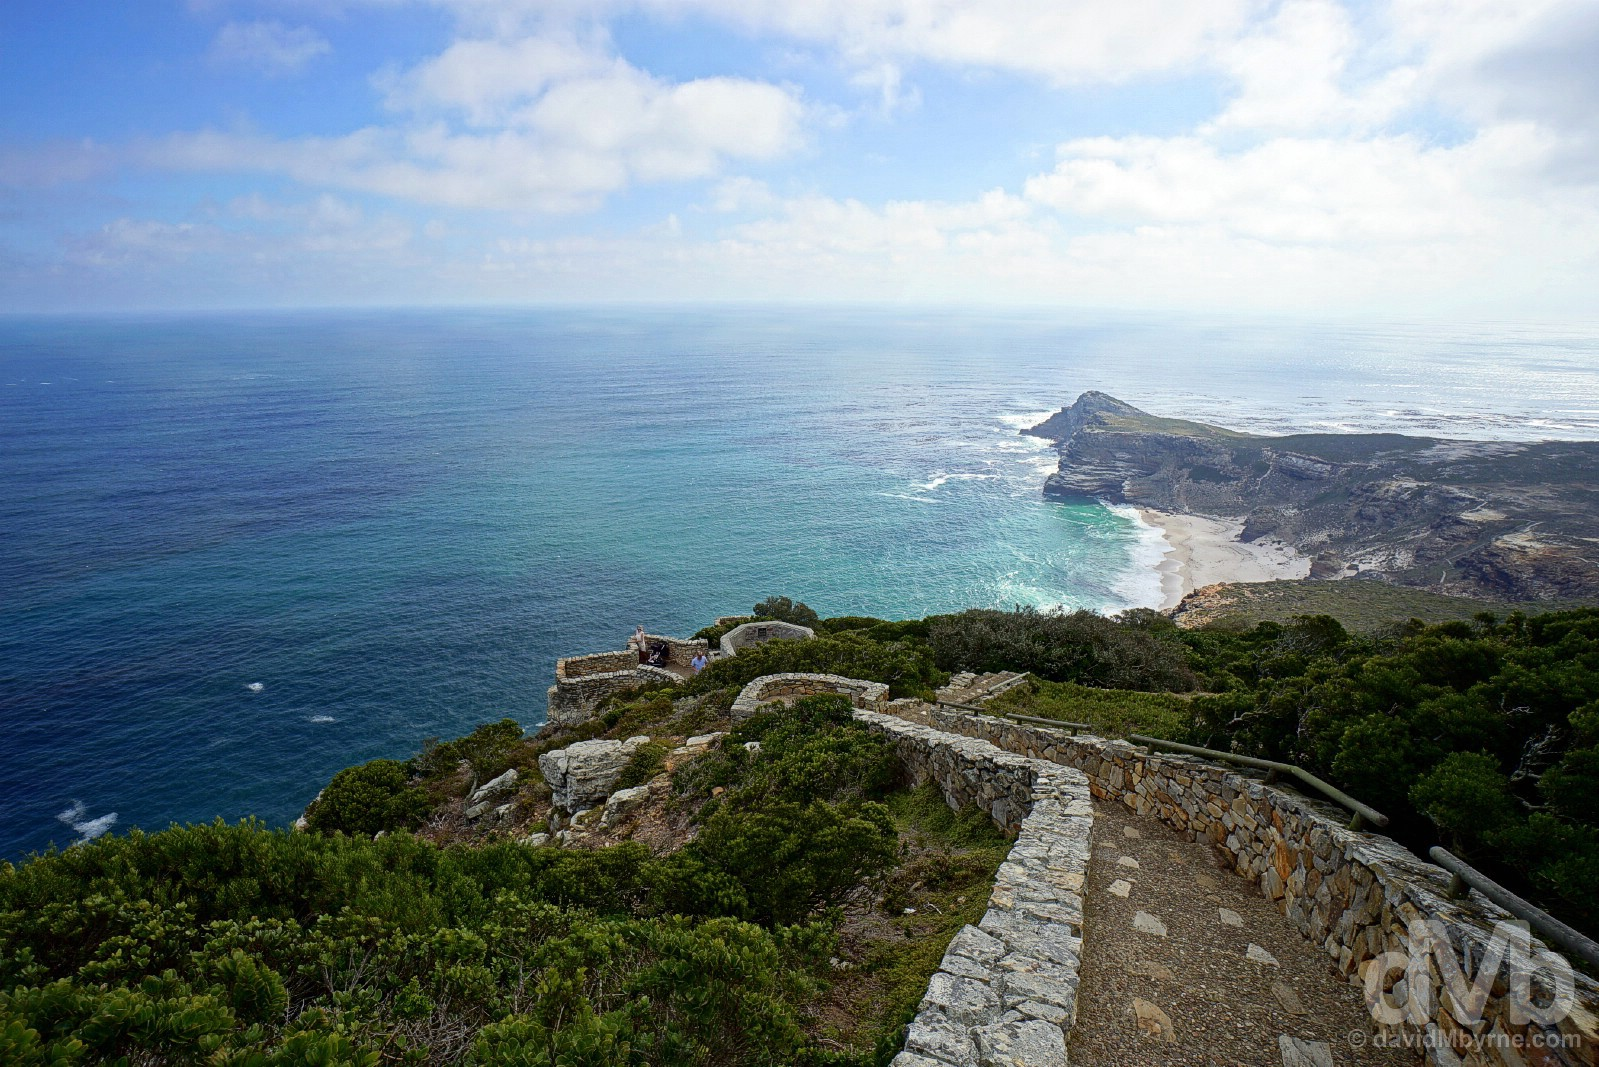 Scenery at Cape Point, Cape Peninsula, Western Cape, South Africa. February 17, 2017.